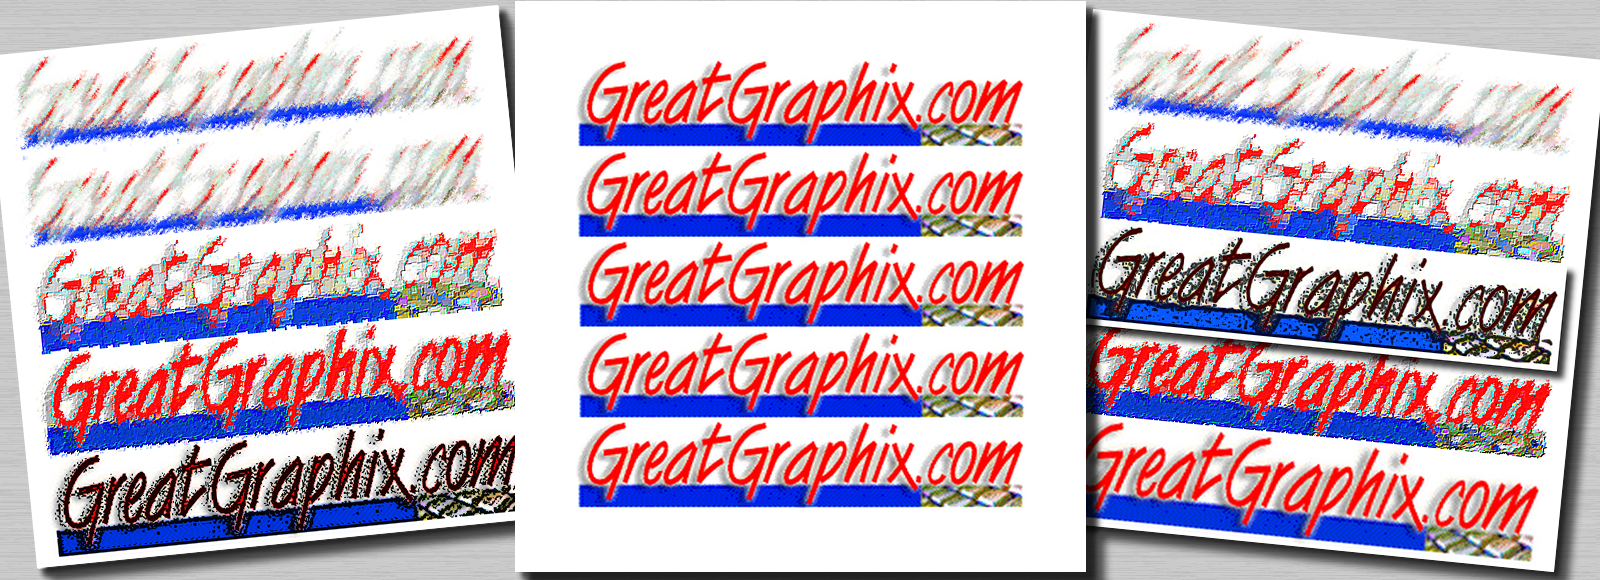 greatgraphix_slider-image_working-on-it-3_1600x600